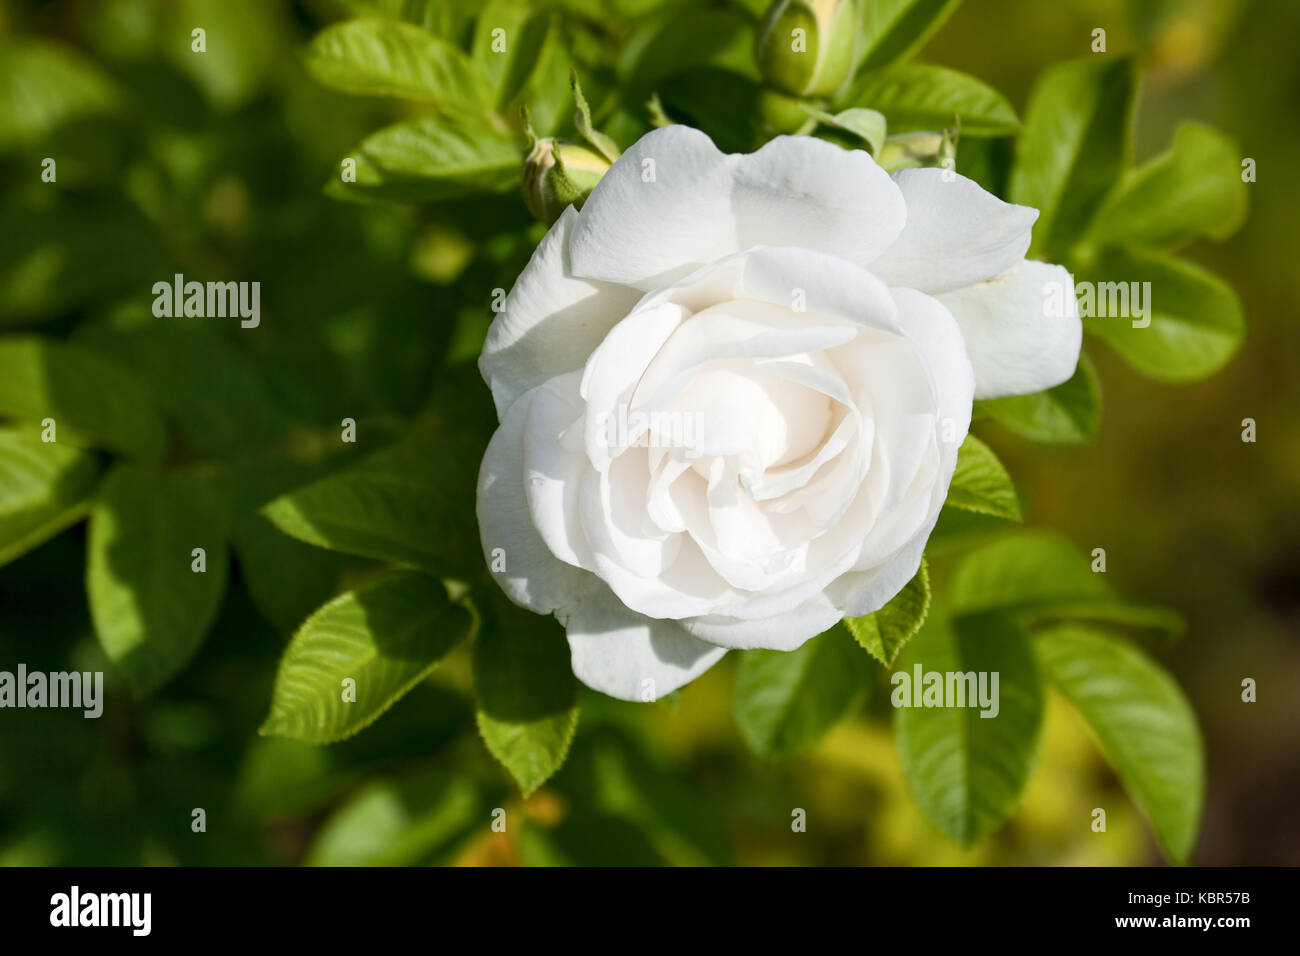 One Big Flower White Rose Close Up Stock Photo 162163551 Alamy